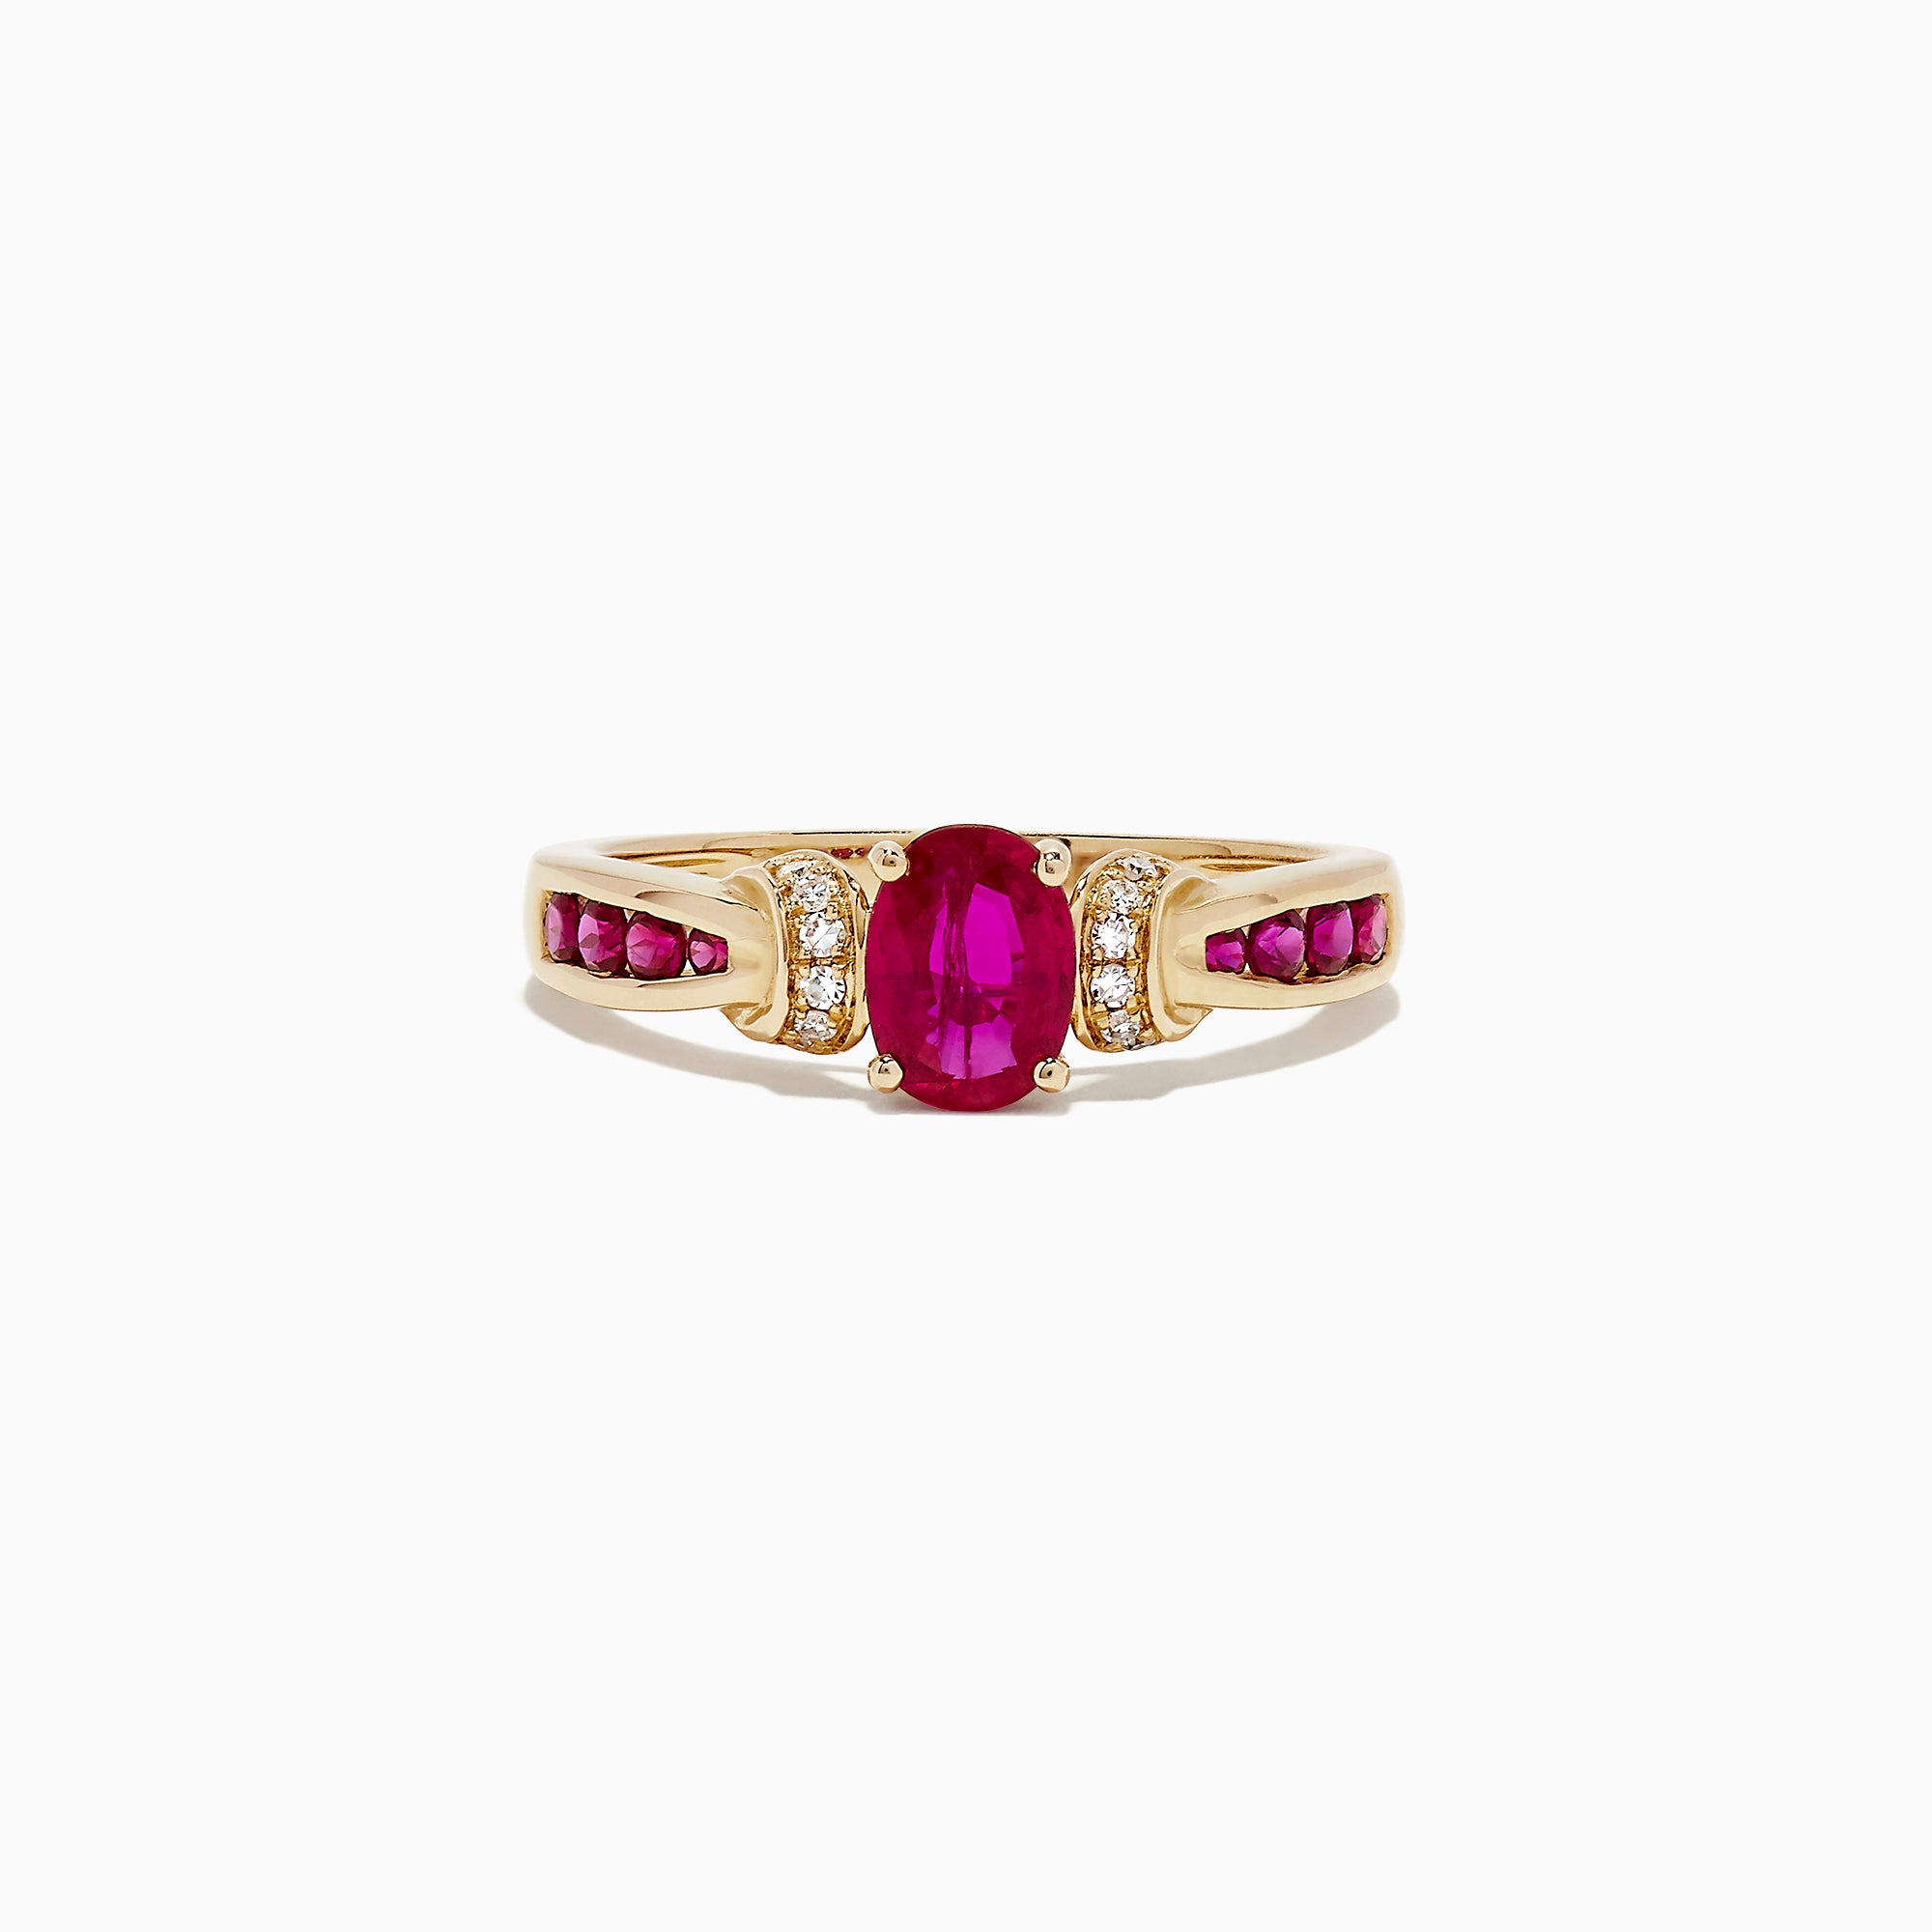 Effy 14K Yellow Gold Ruby and Diamond Ring, 1.32 TCW